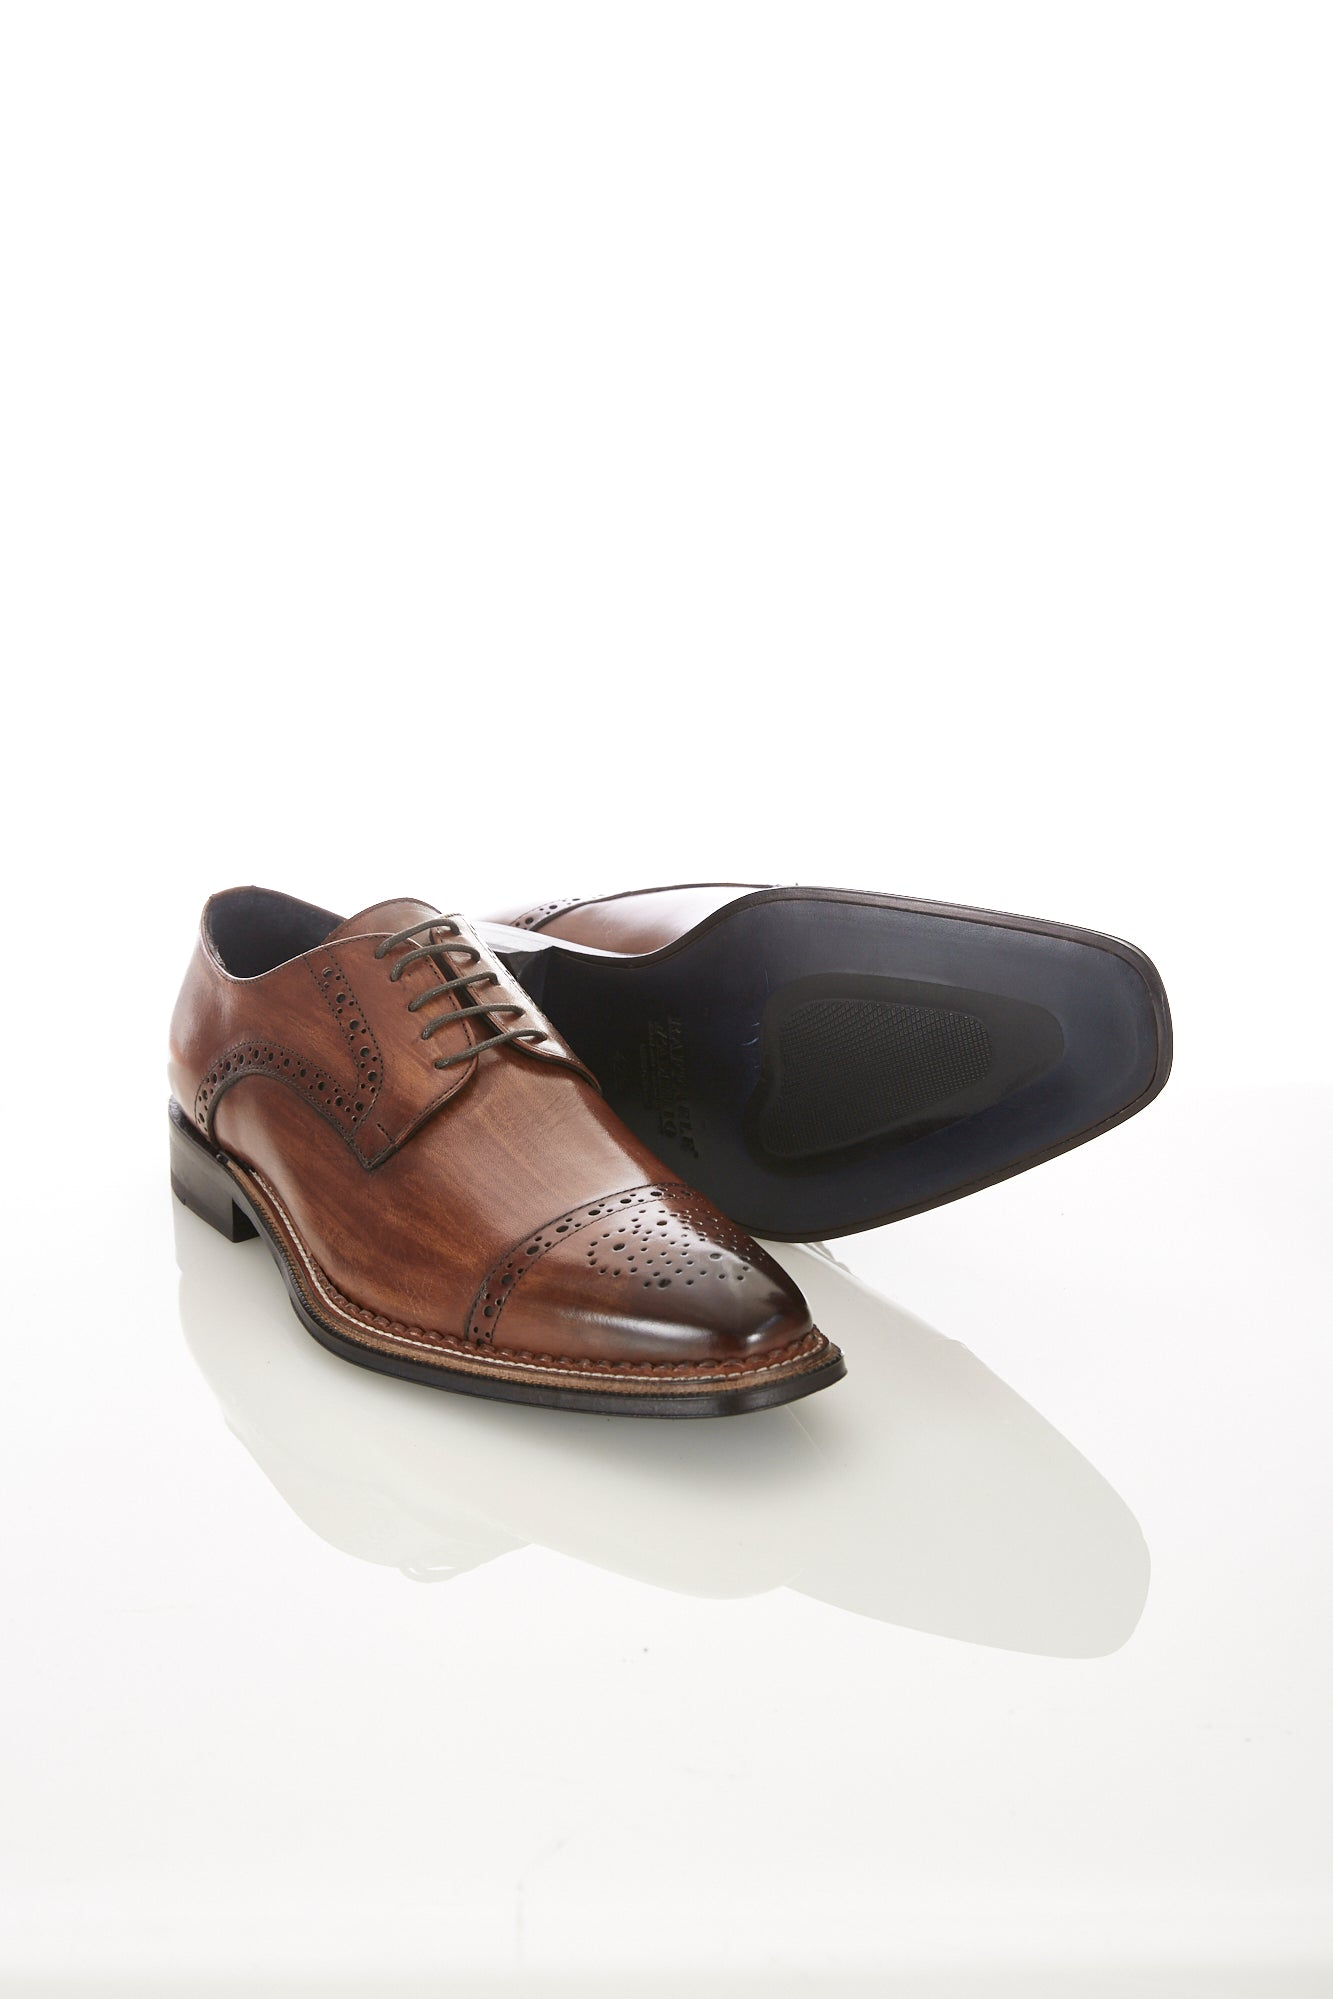 Raffaele D'Amelio Brown Cap Toe Shoe